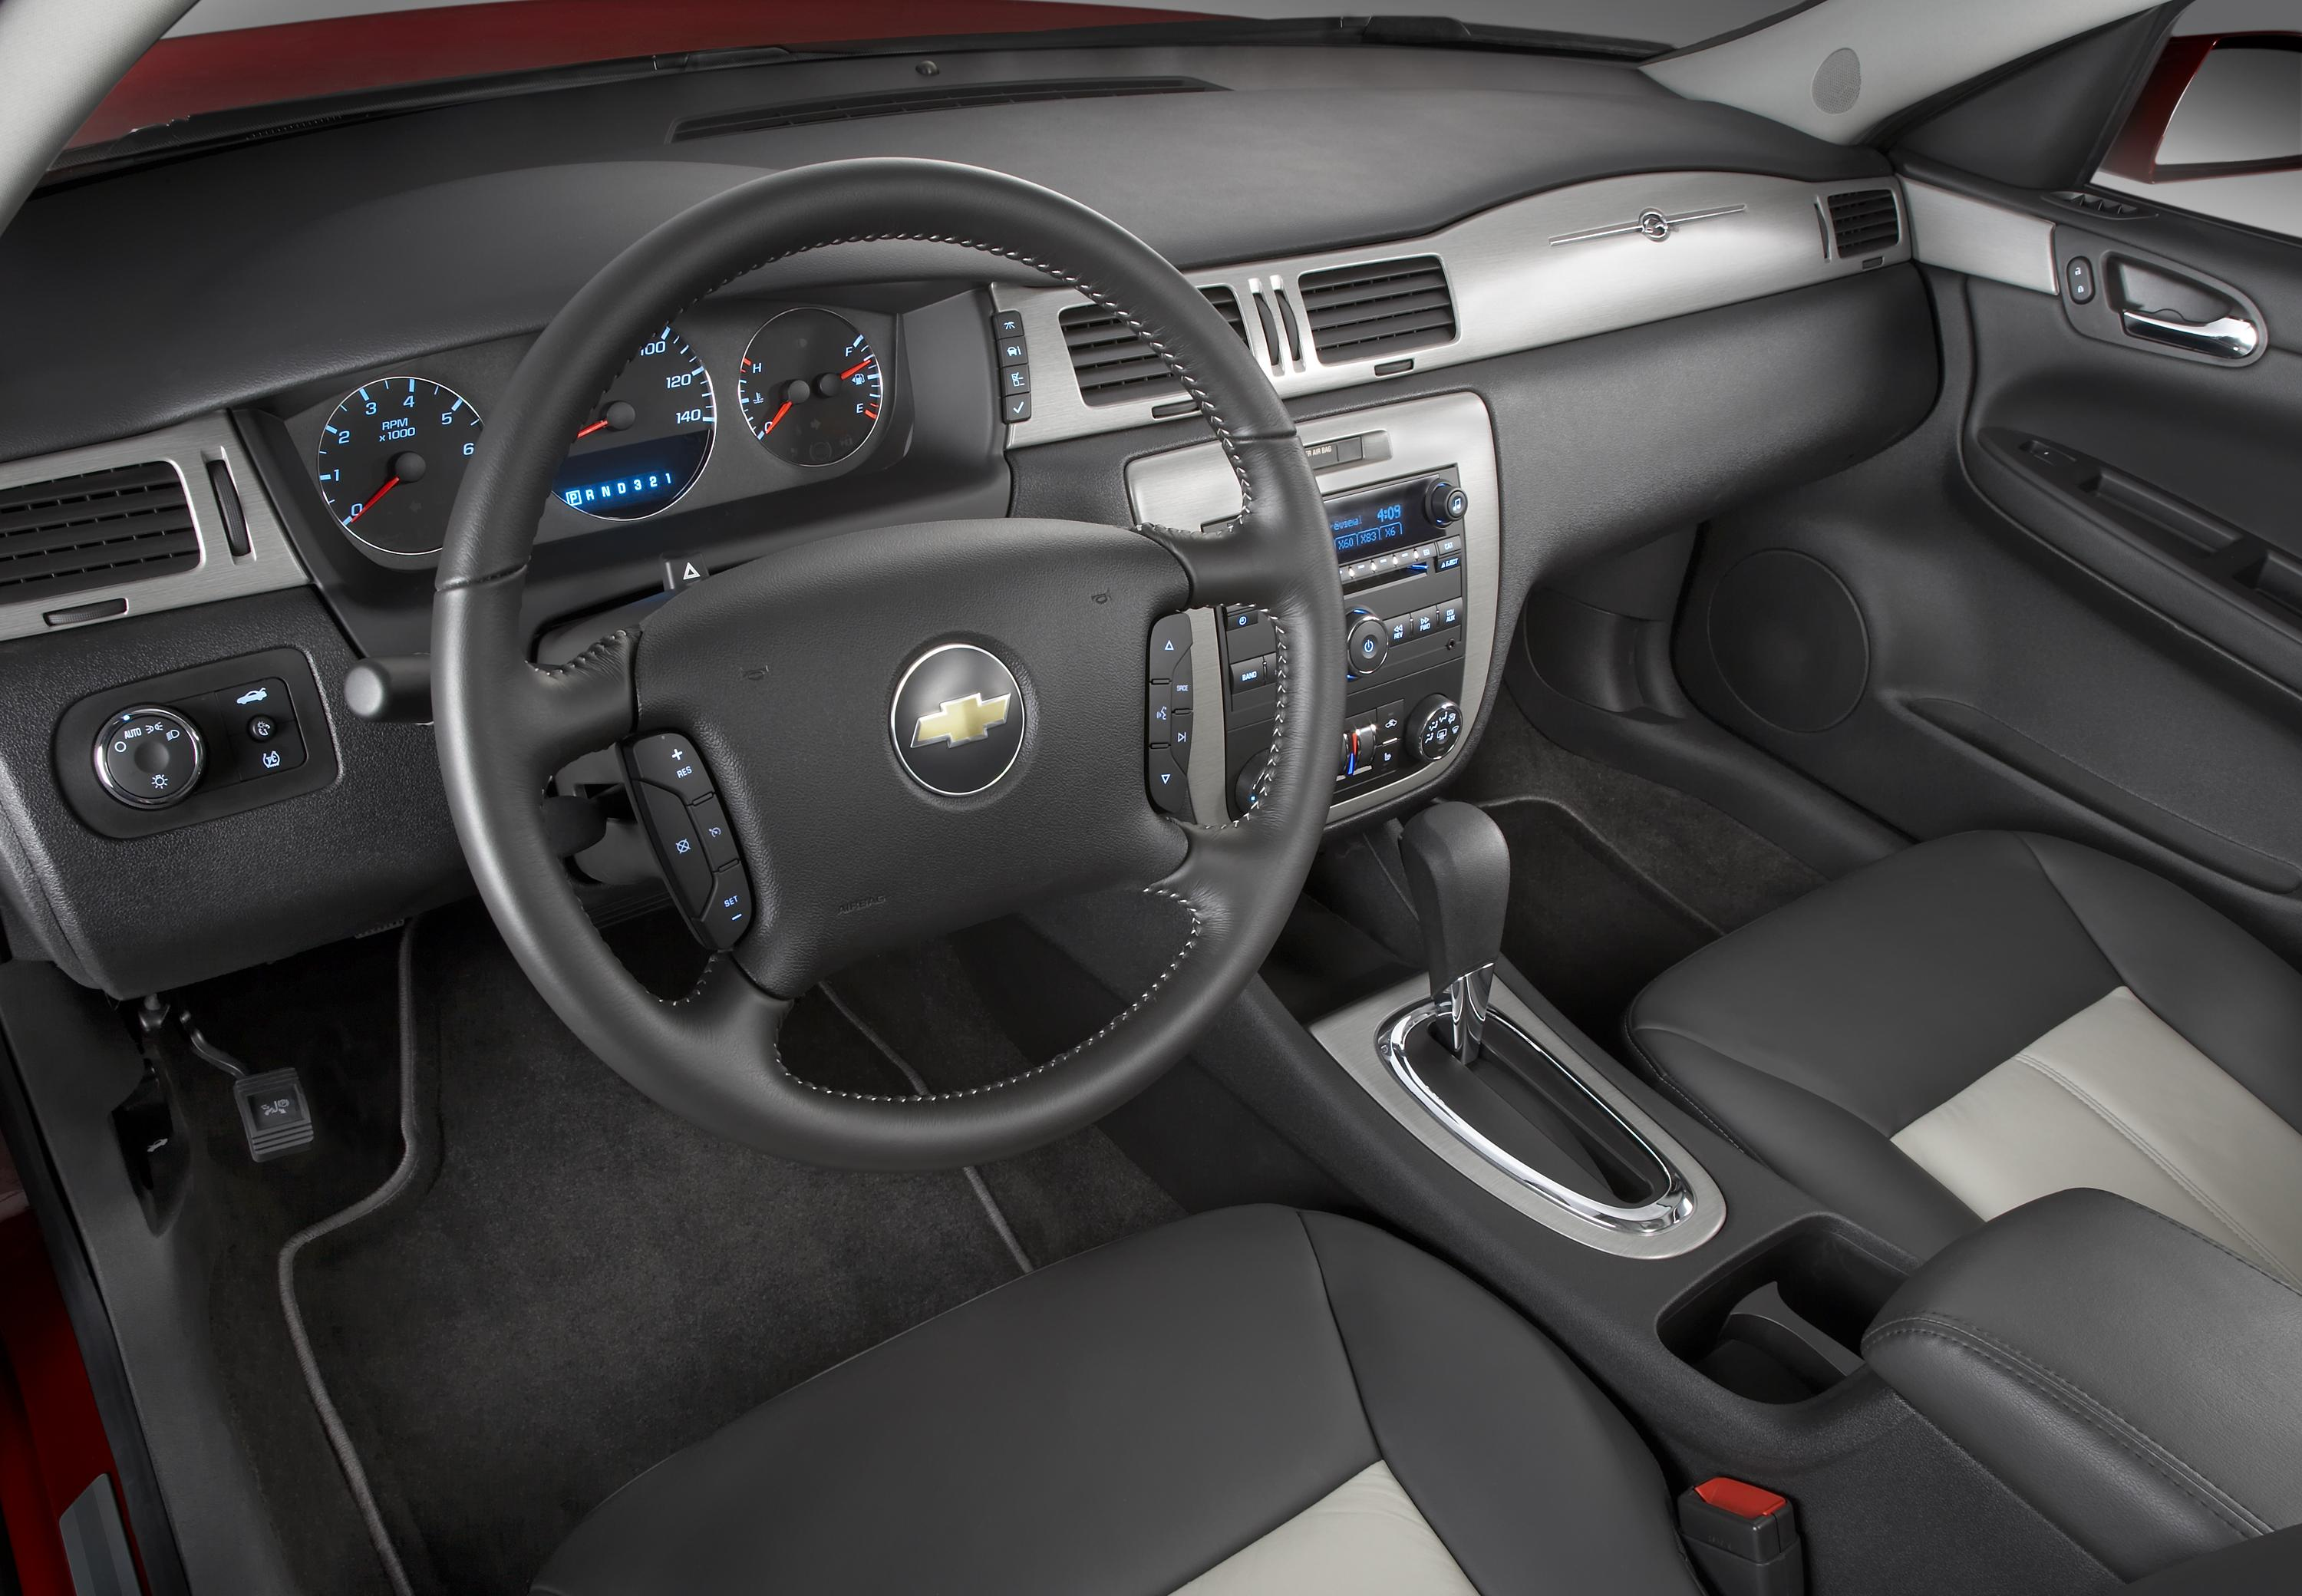 2008 Chevrolet Impala 50th Anniversary Edition Review ...